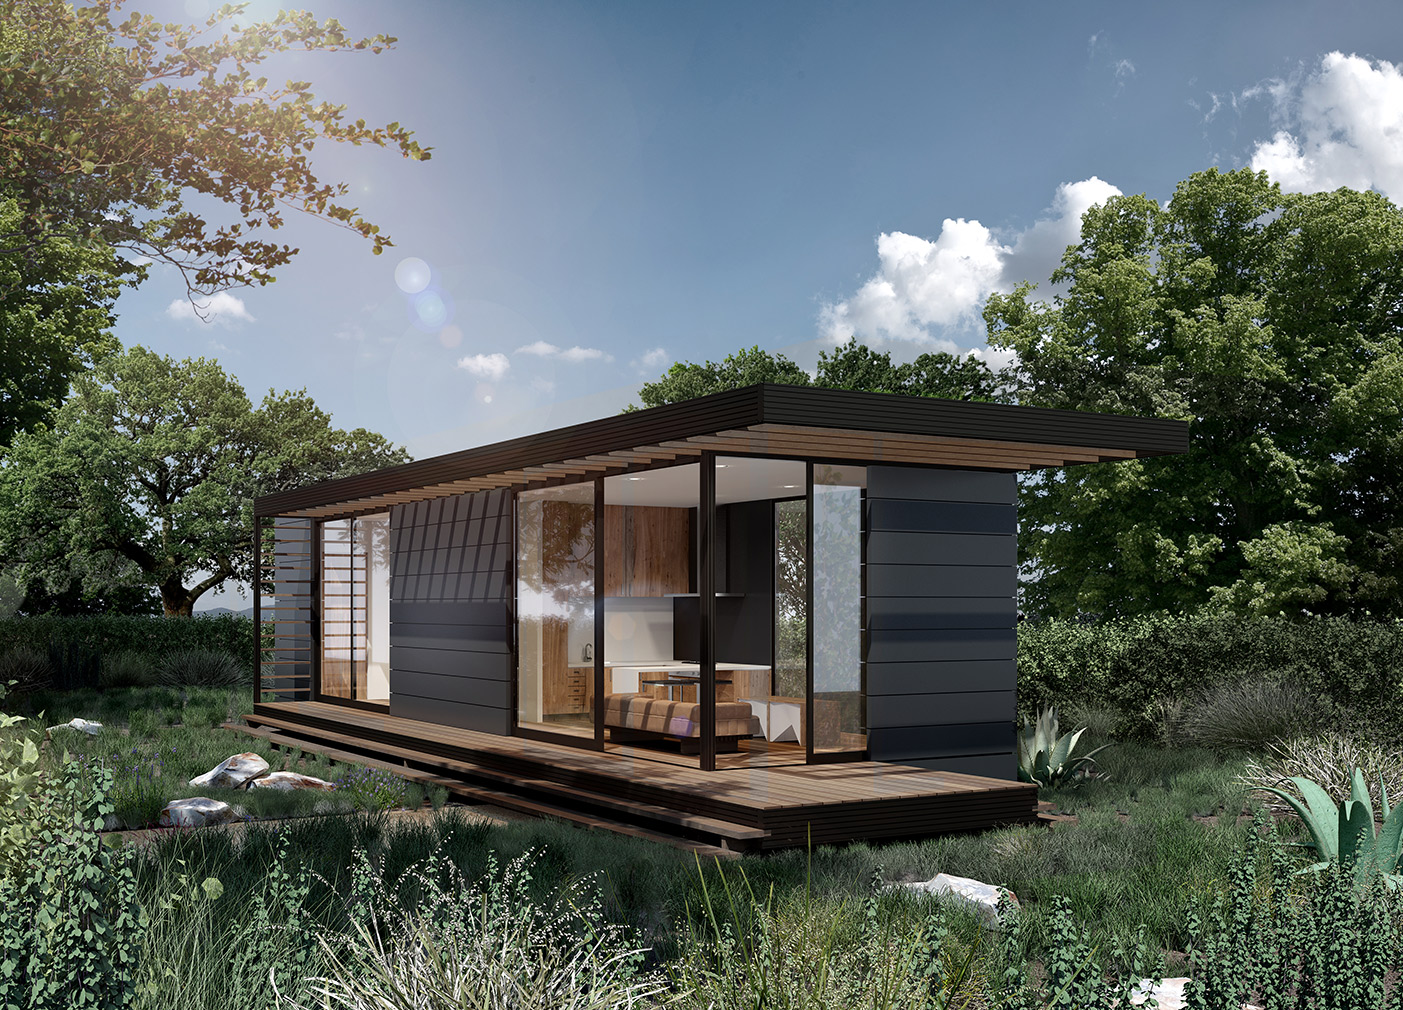 Canopy For Bedroom Revolution Precrafted Properties Turn Tiny Homes Into